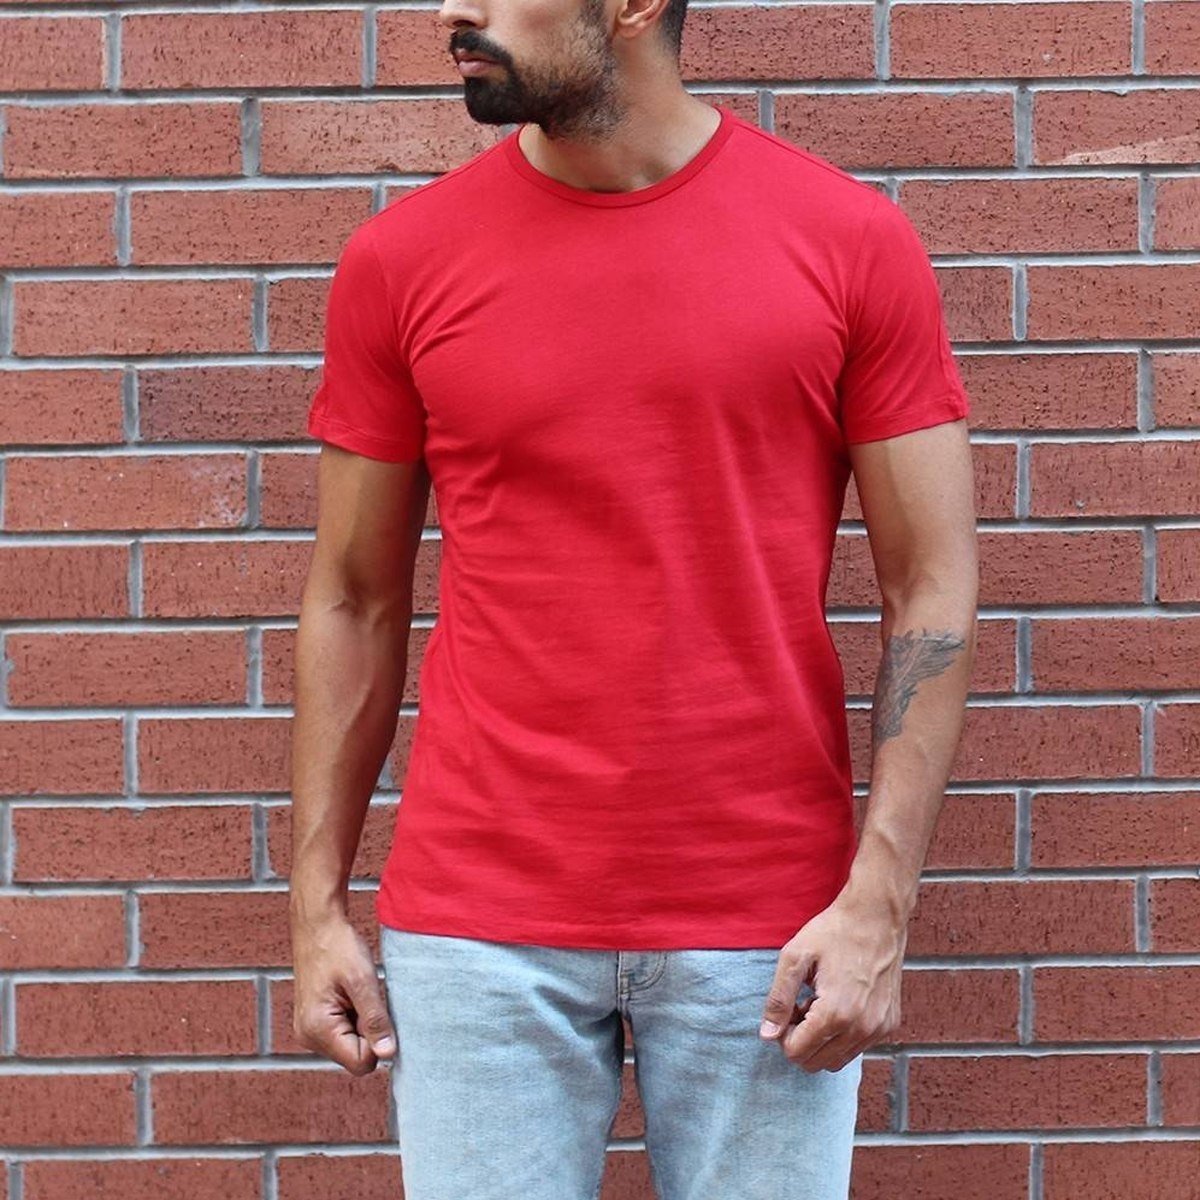 Men's Round Neck Stylish Basic T-Shirt Red